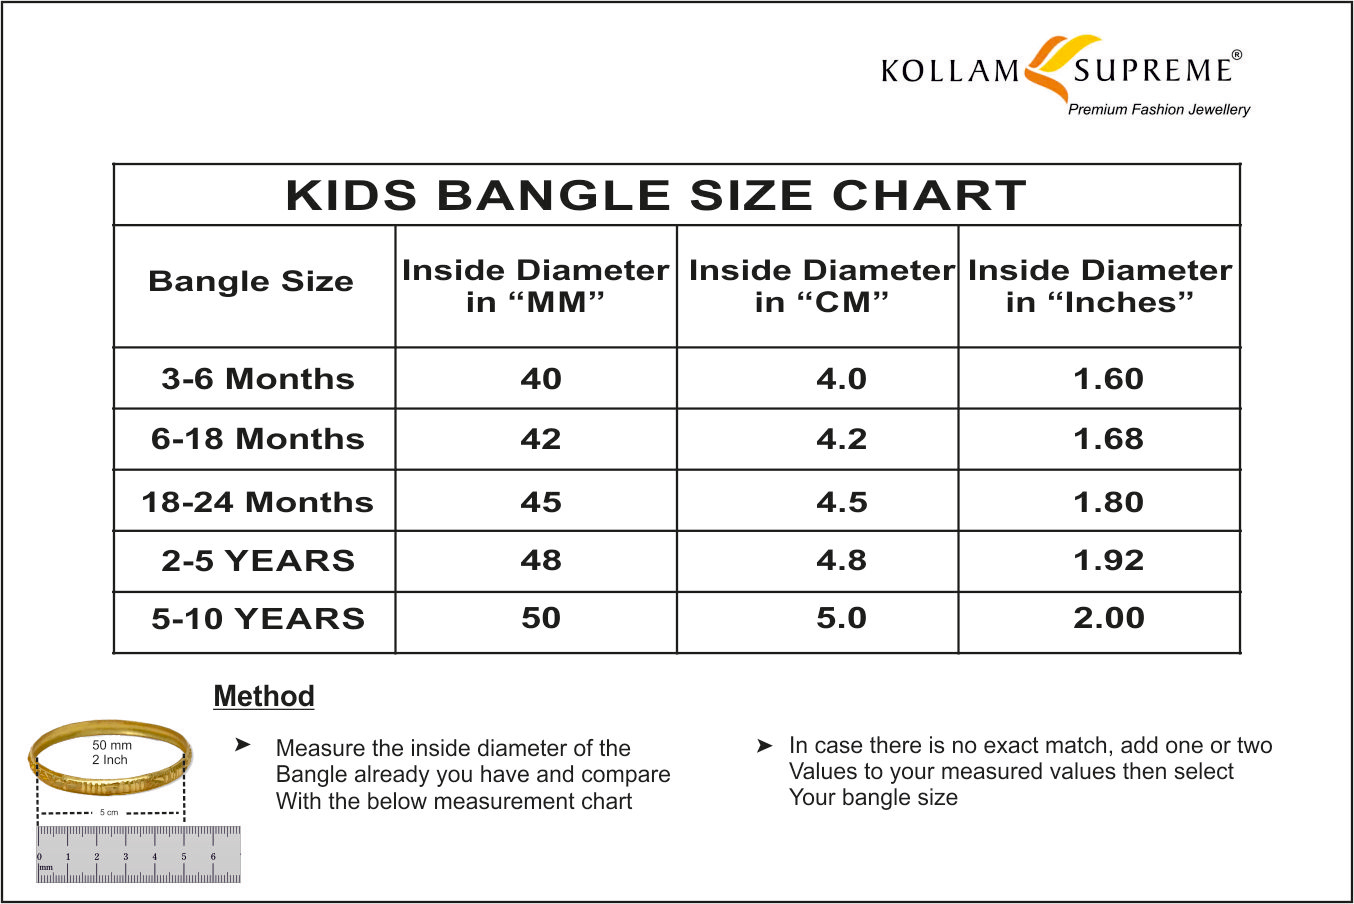 Kids bangle size chart